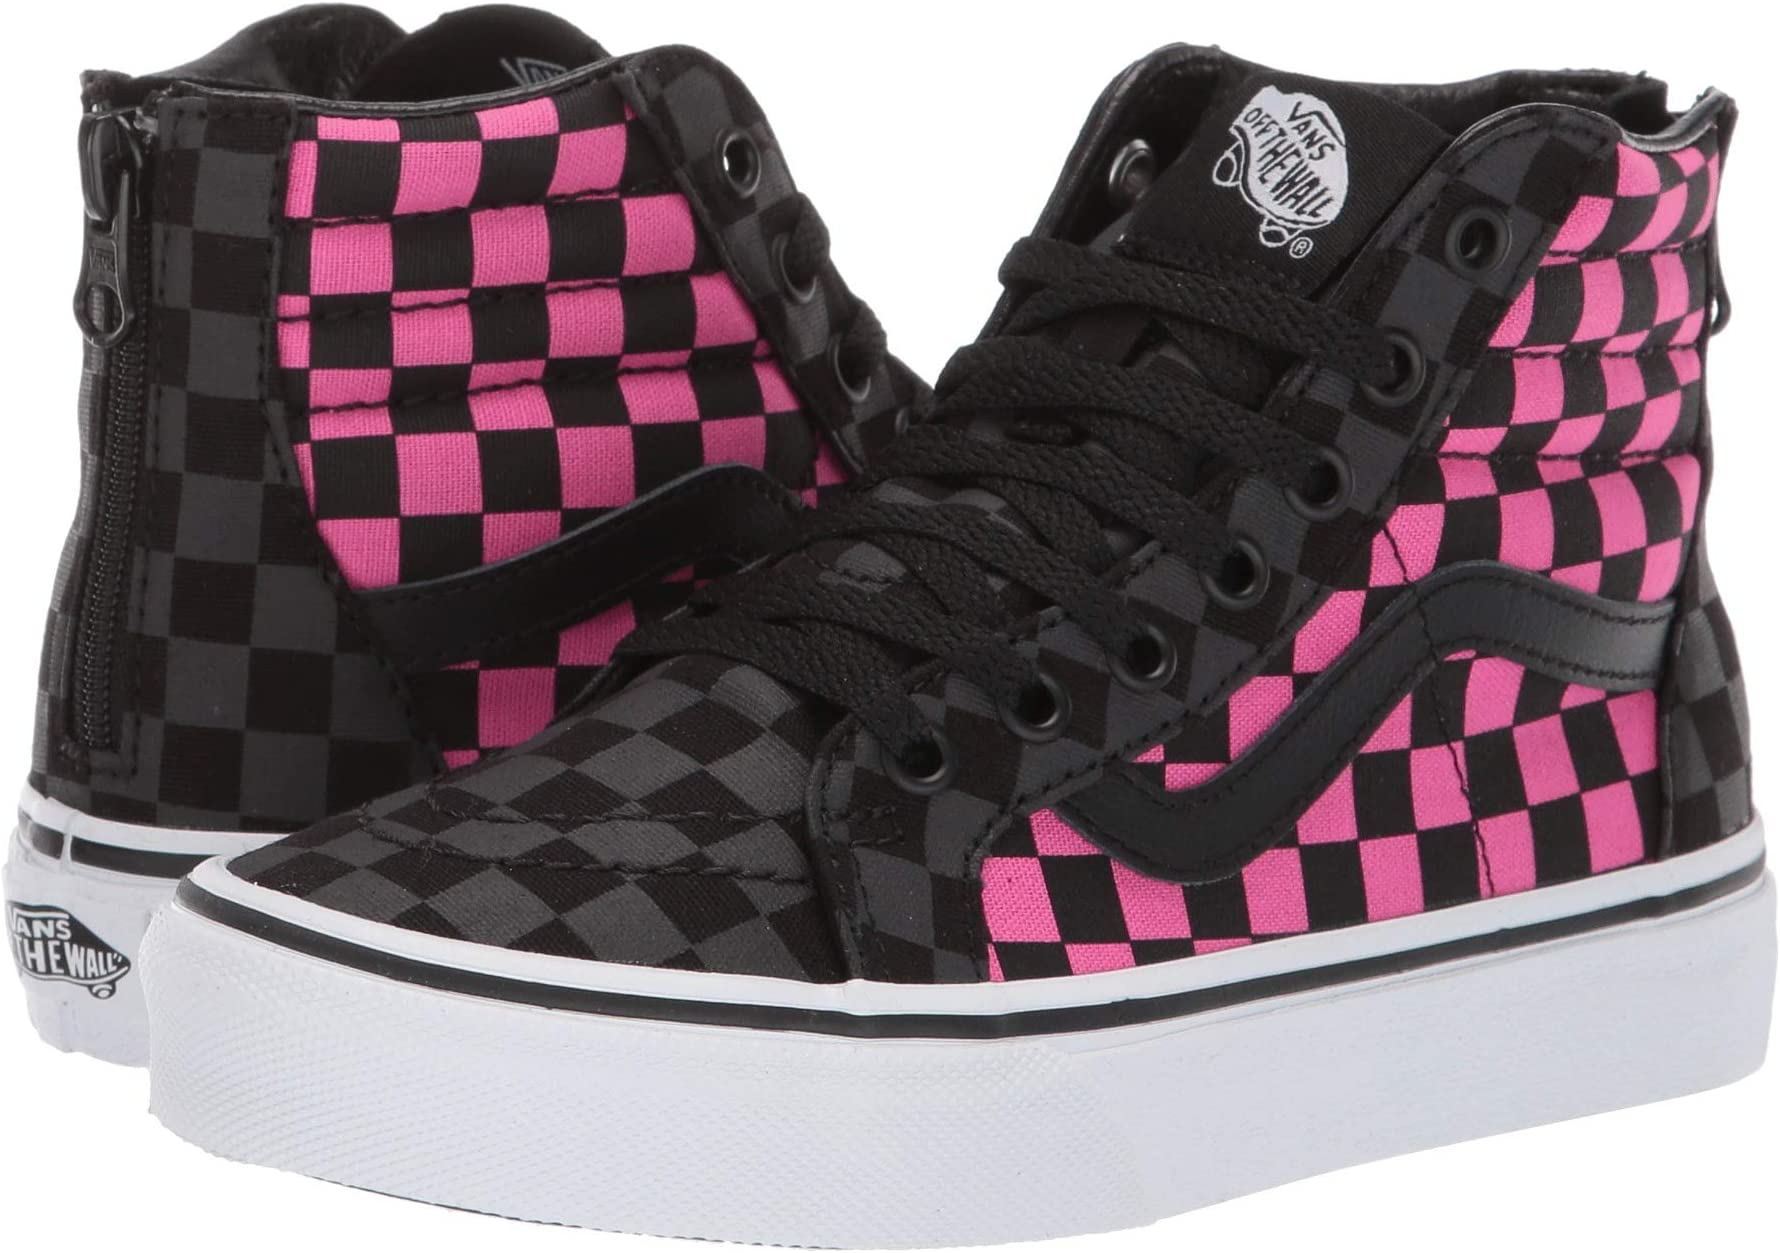 73ee353268 Girls' Shoes | Zappos.com